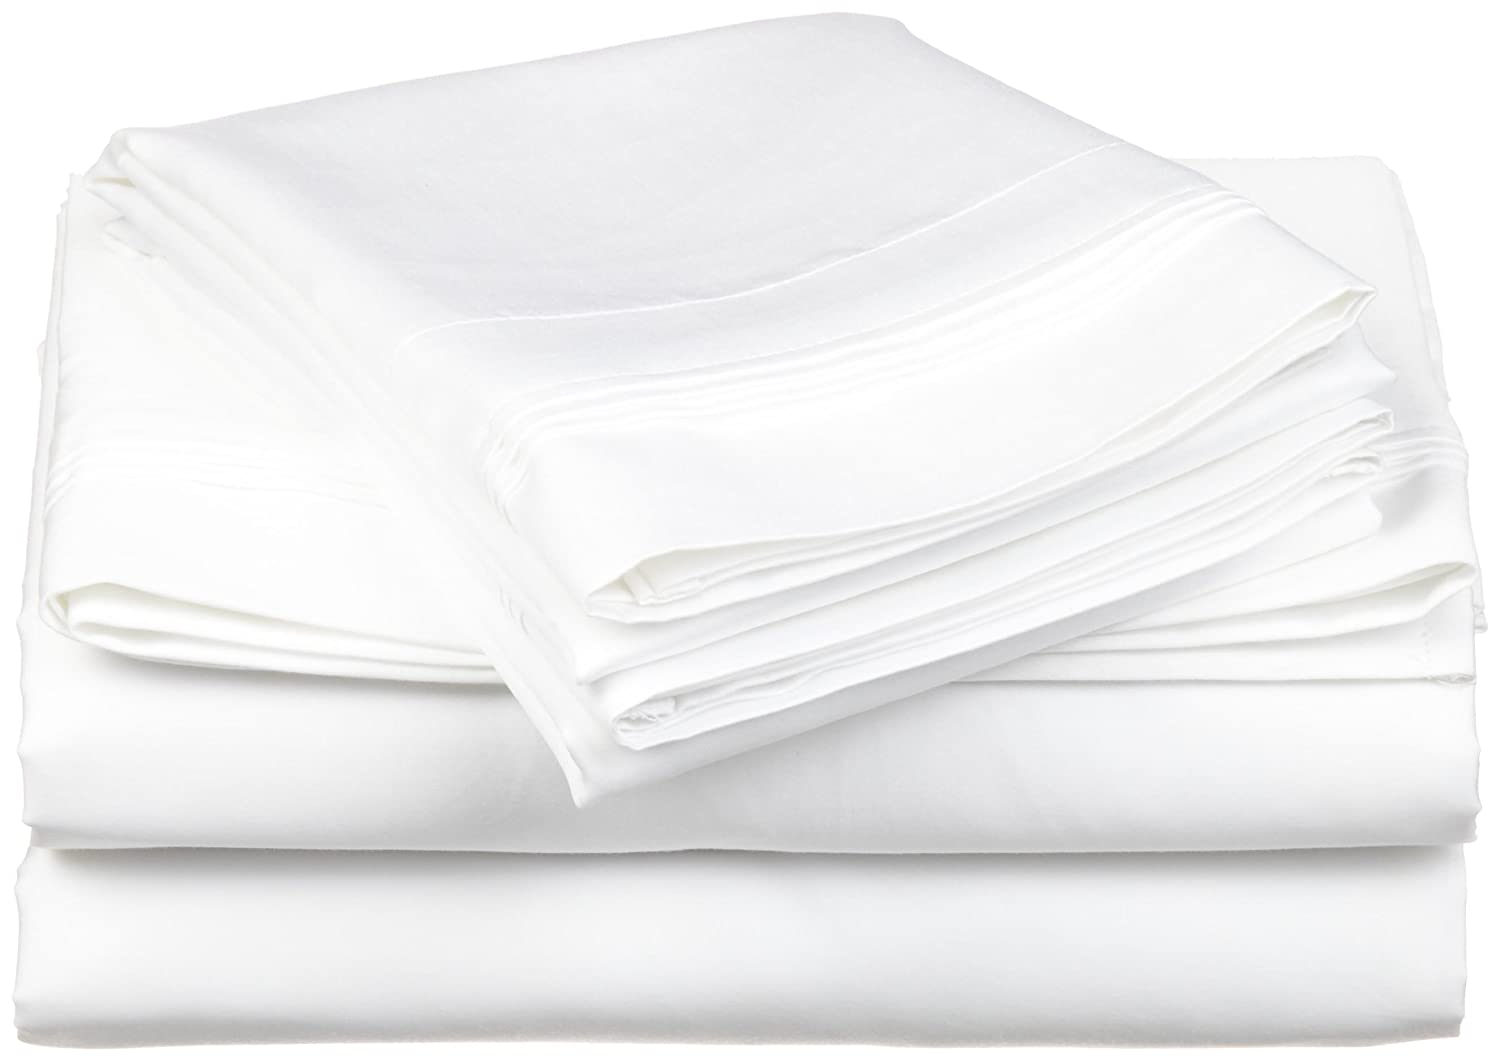 4b1893d26a Amazon.com: 100% Egyptian Cotton 650 Thread Count, Twin XL 3-Piece Sheet Set,  Deep Pocket, Single Ply, Solid, White: Home & Kitchen